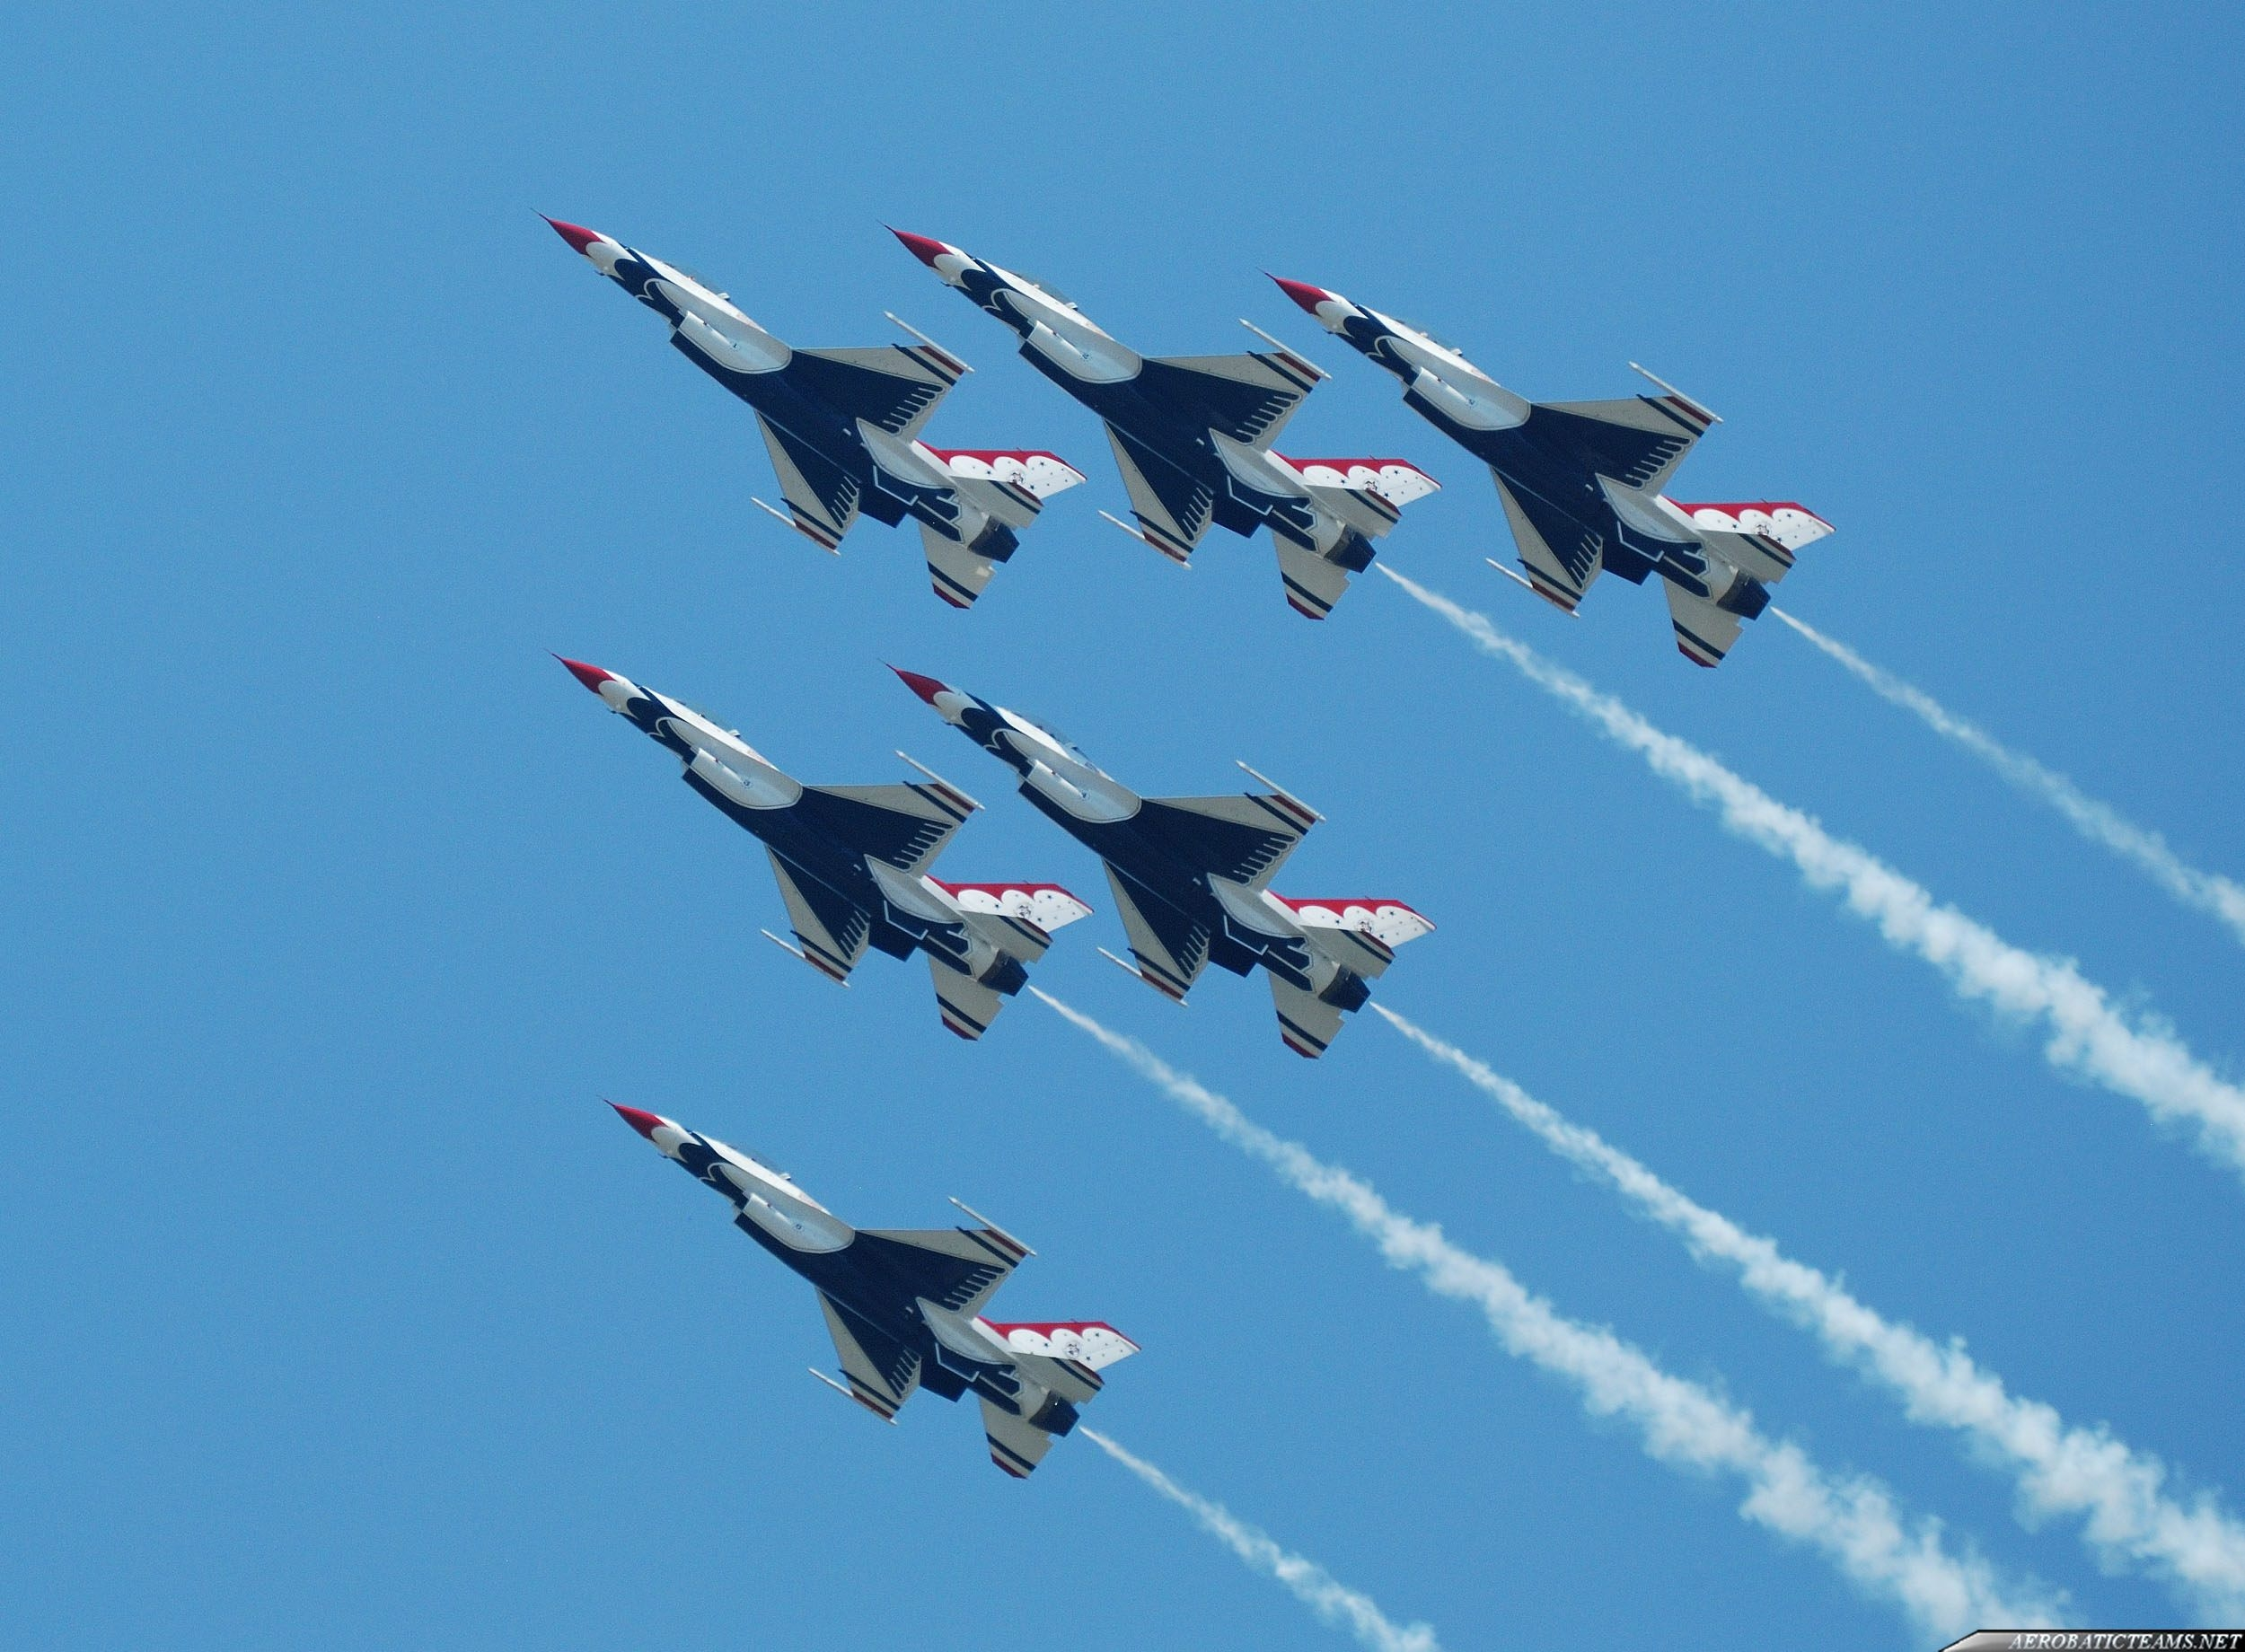 Thunderbirds Super Bowl LIII flyover